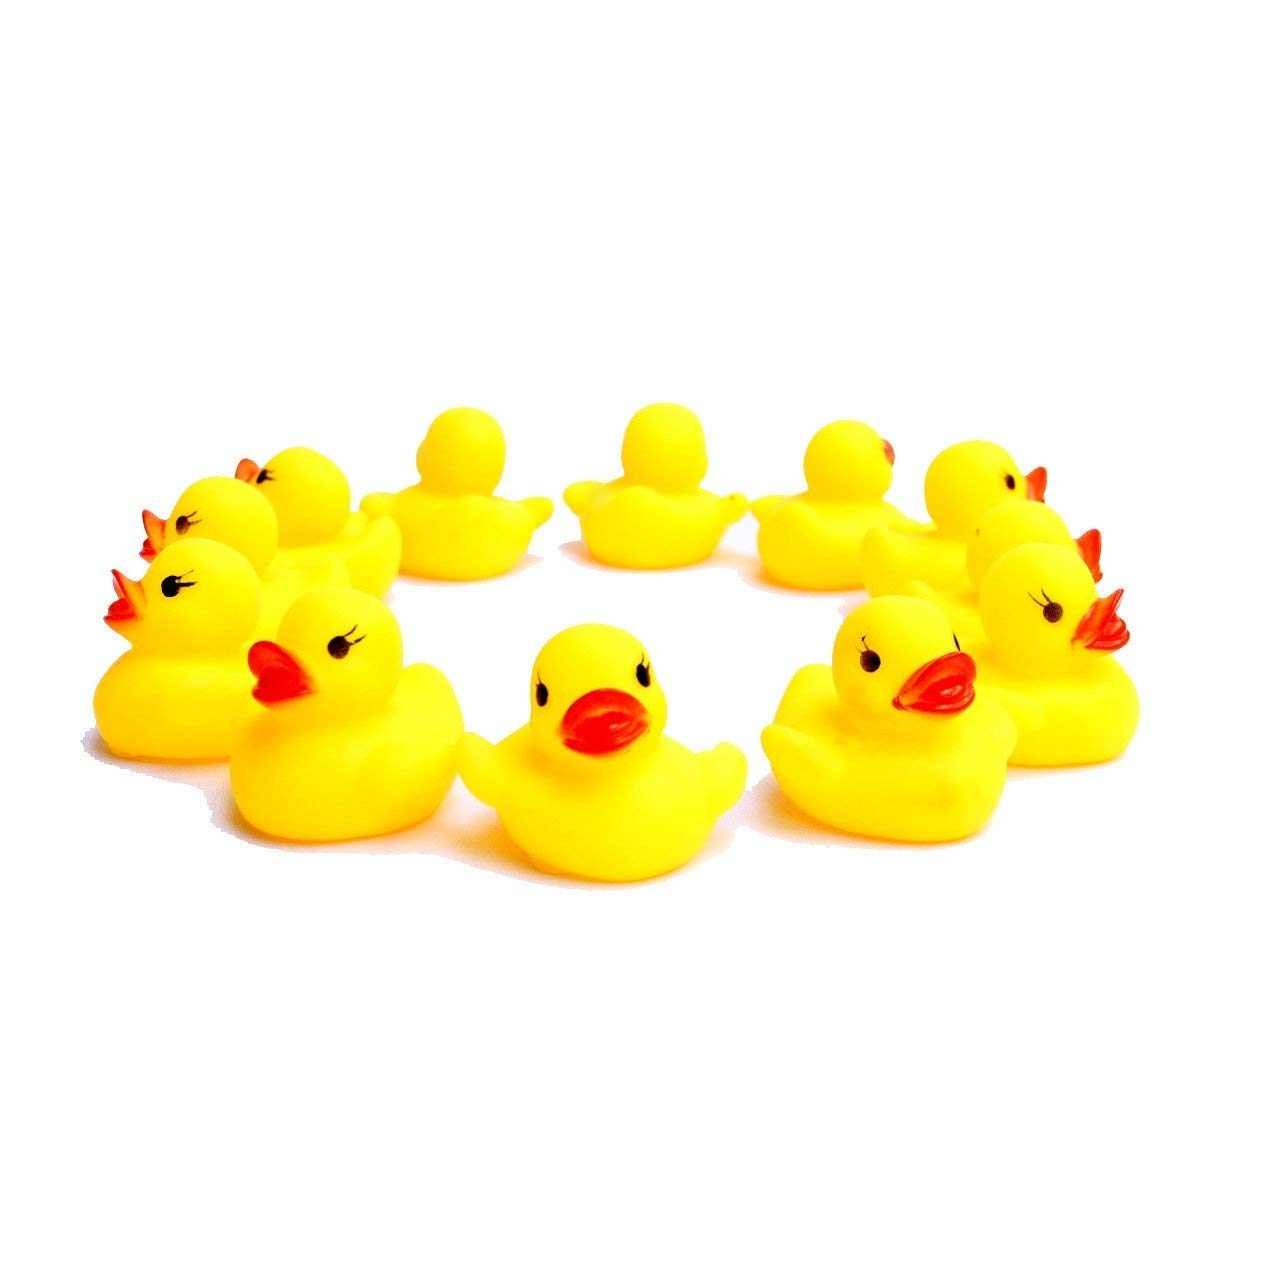 Rubber Ducks - 24 Pack Baby Bath - Mini Floating Bath Toy Duckies - Let Your Child Experience The Fun And Enjoyment Of Bath-Time - Early Developmental Learning - Prize - Christmas, Holiday Gift...